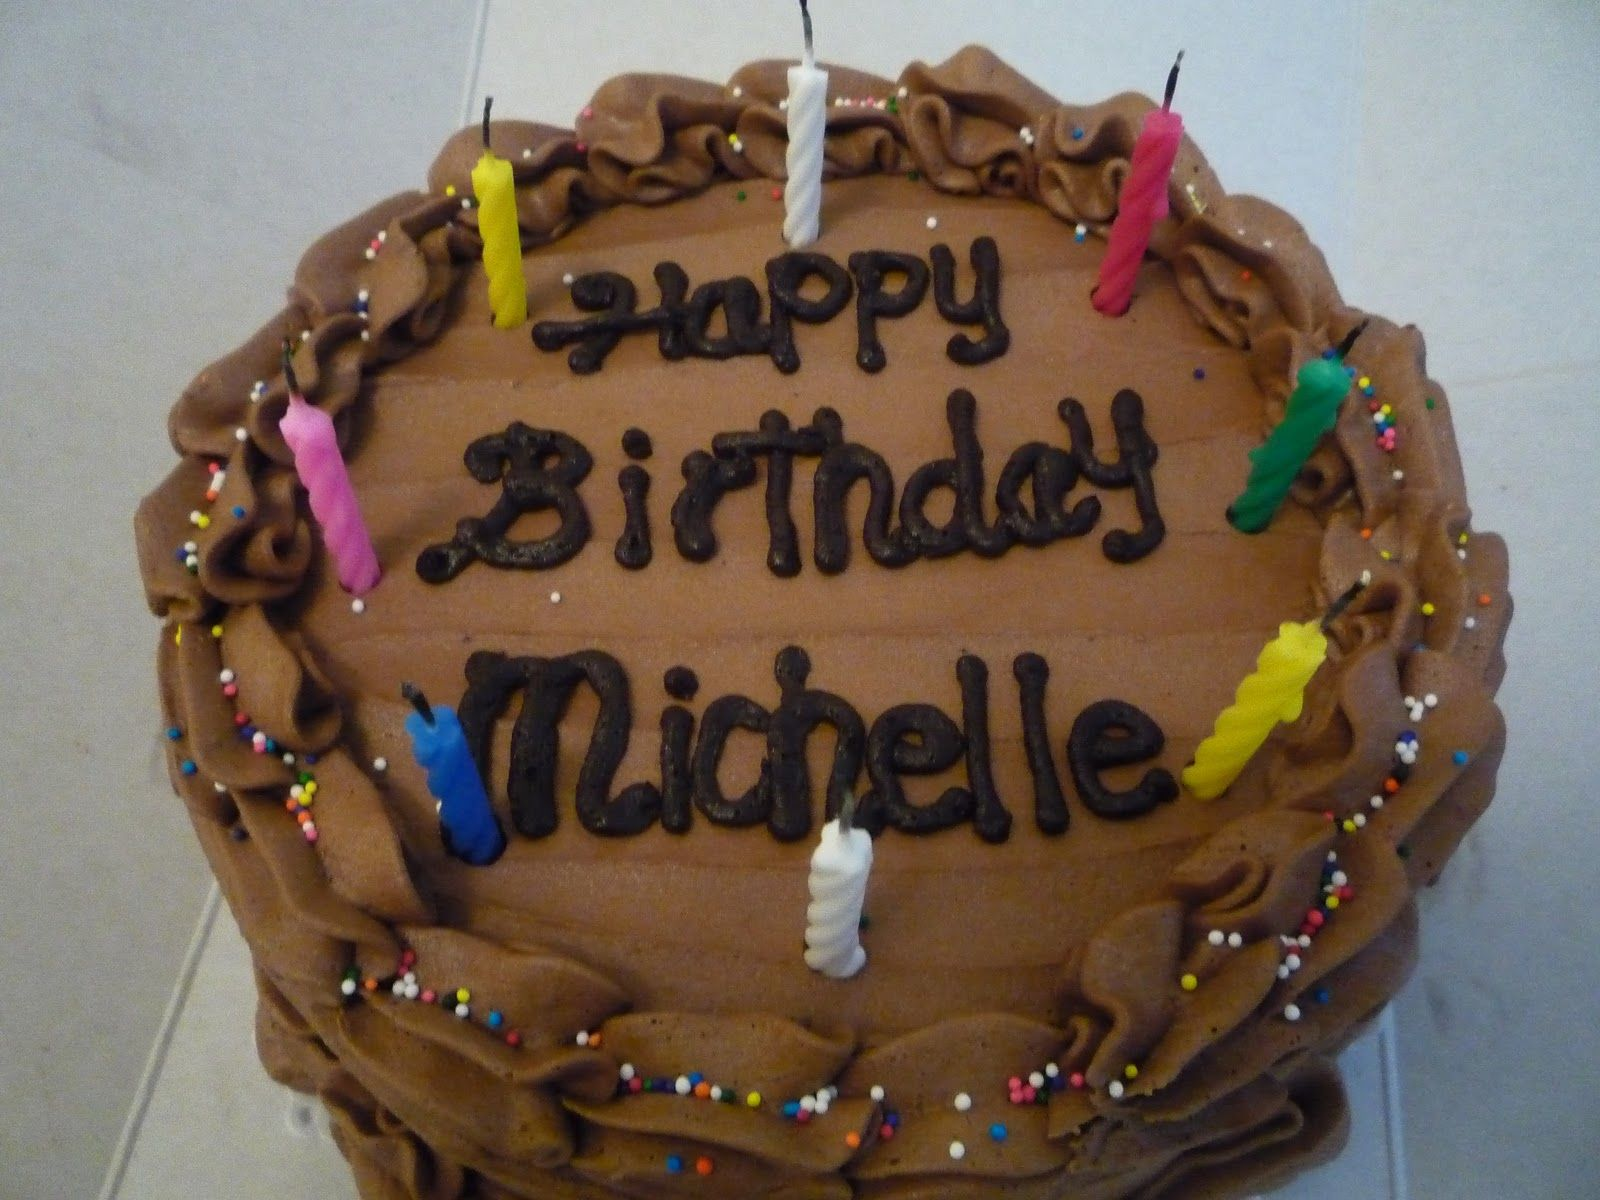 Happy Birthday Michelle Wishes SMS Quotes, Cake Images